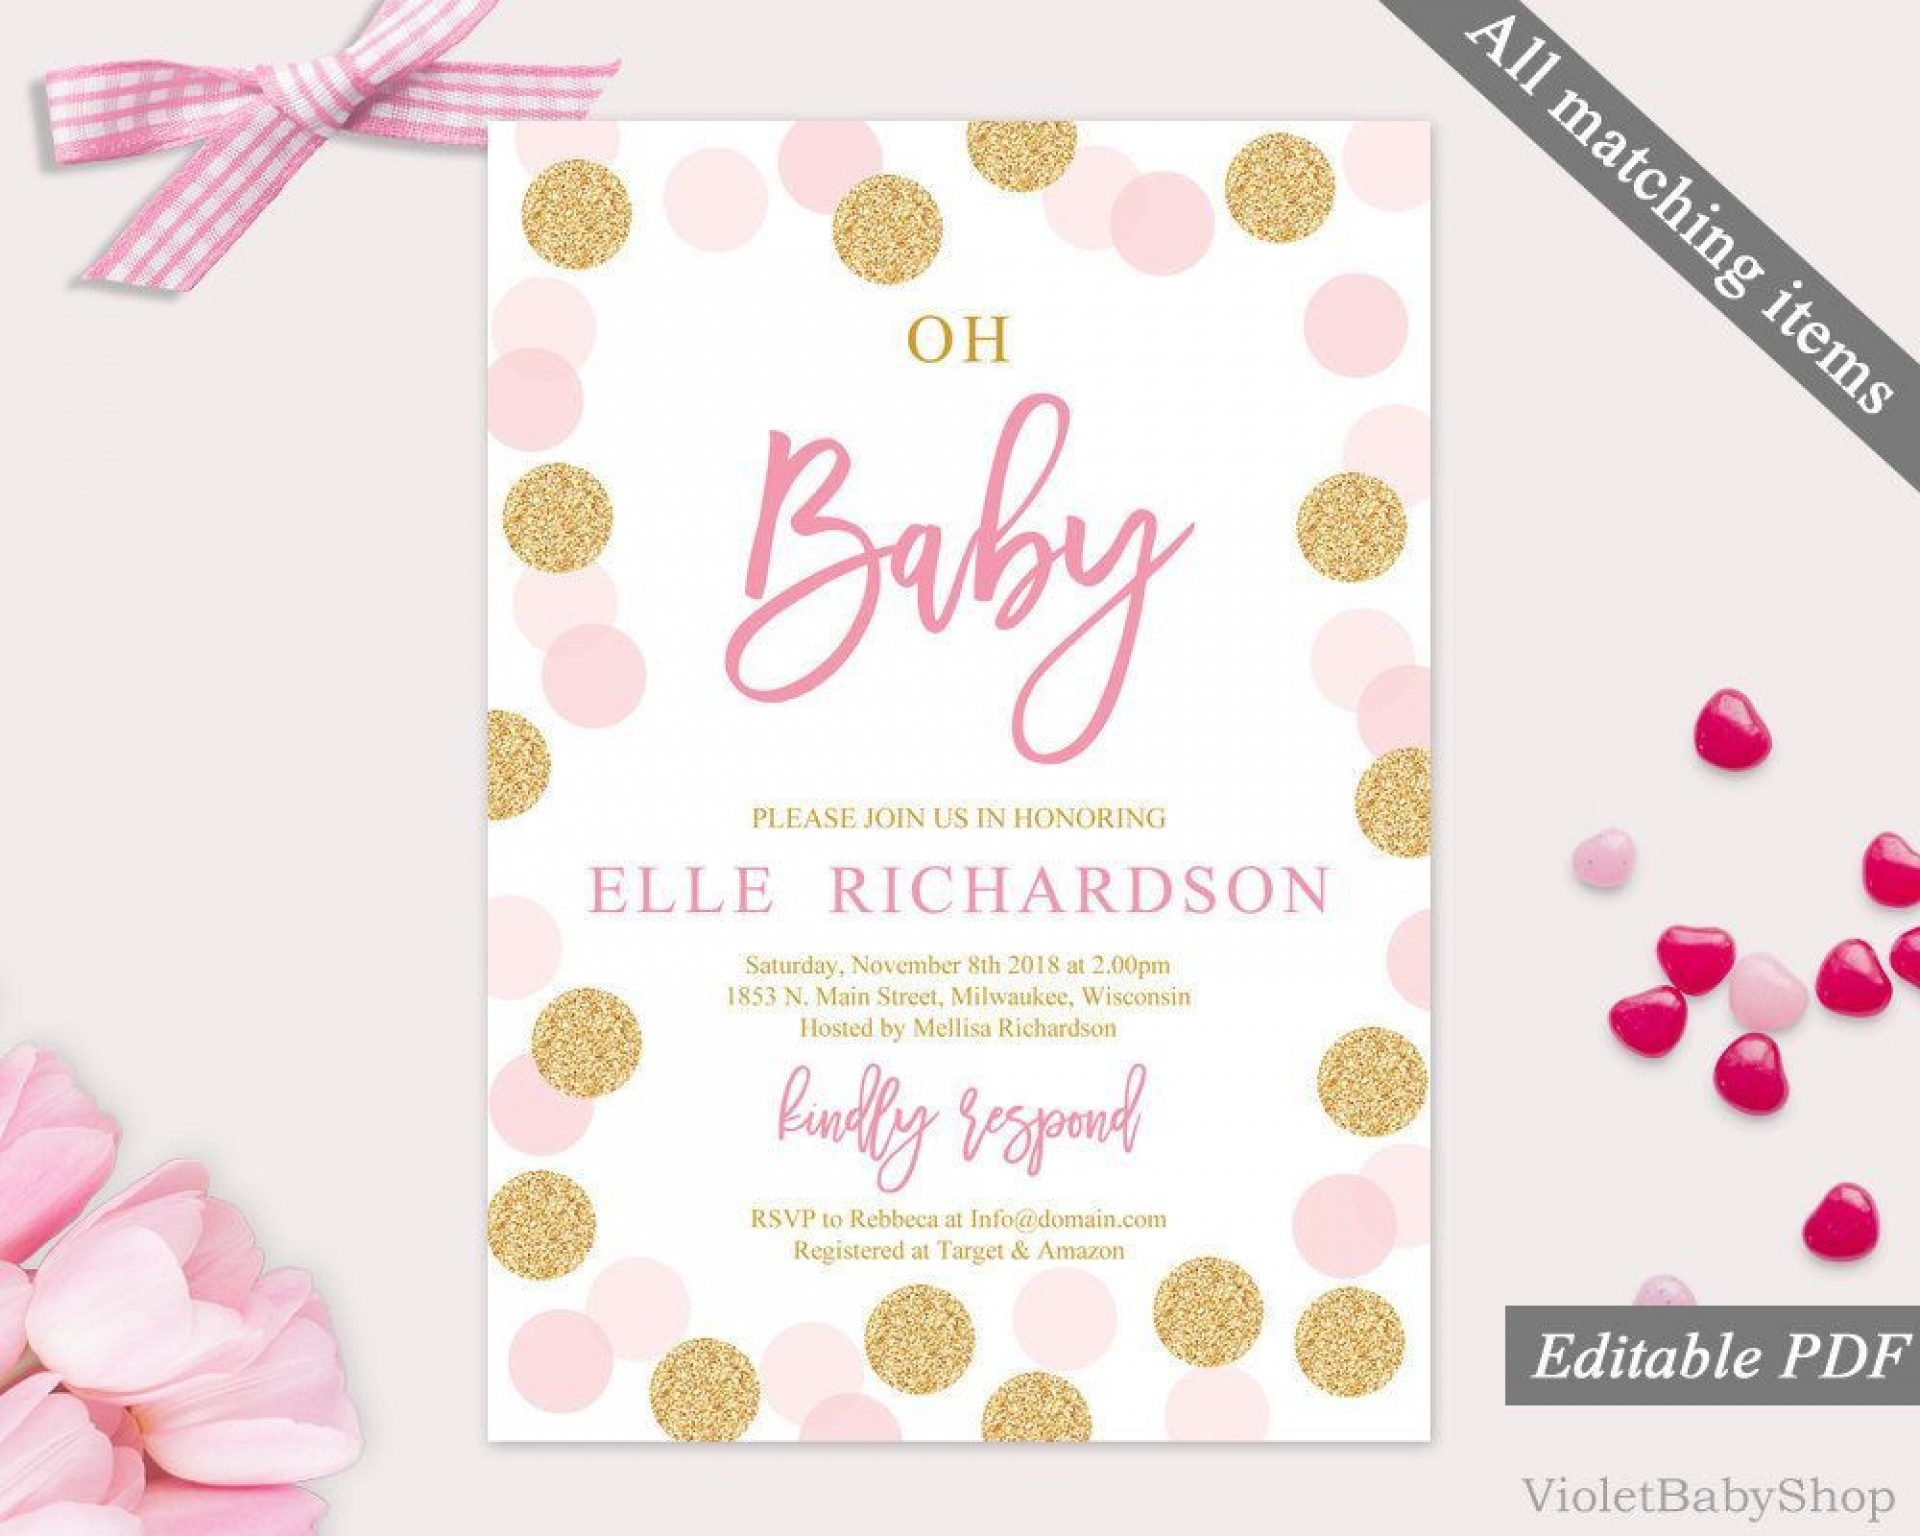 003 Amazing Baby Shower Template Girl Concept  Nautical Invitation Free For Word1920